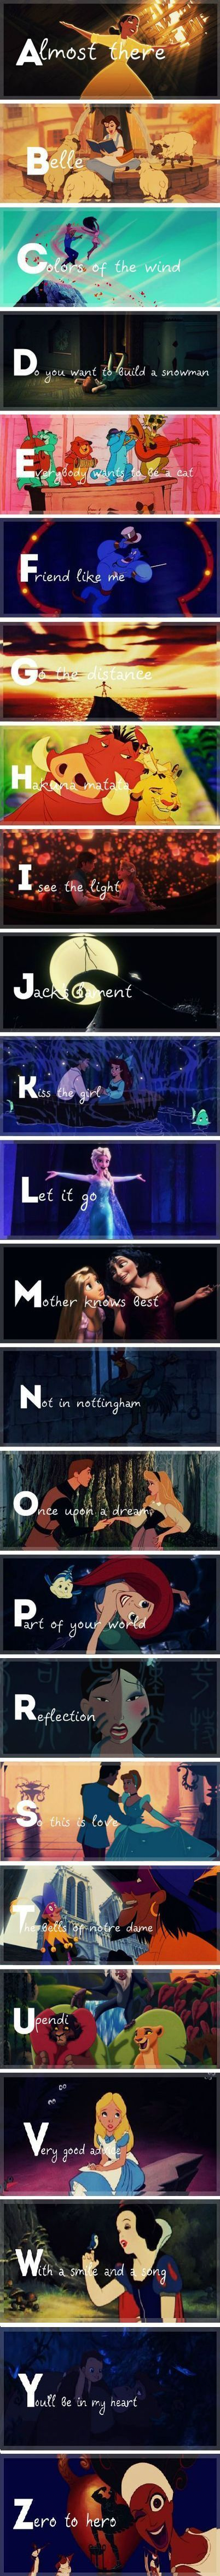 #remember #disney #lyrics #taking #these #prove #songs #quiz #tell #this #song #real #fake #the #canCan You Tell If These Disney Song Lyrics Are Real Or Fake? Do you remember all the Disney songs? Prove it by taking this quiz.Do you remember all the Disney songs? Prove it by taking this quiz.